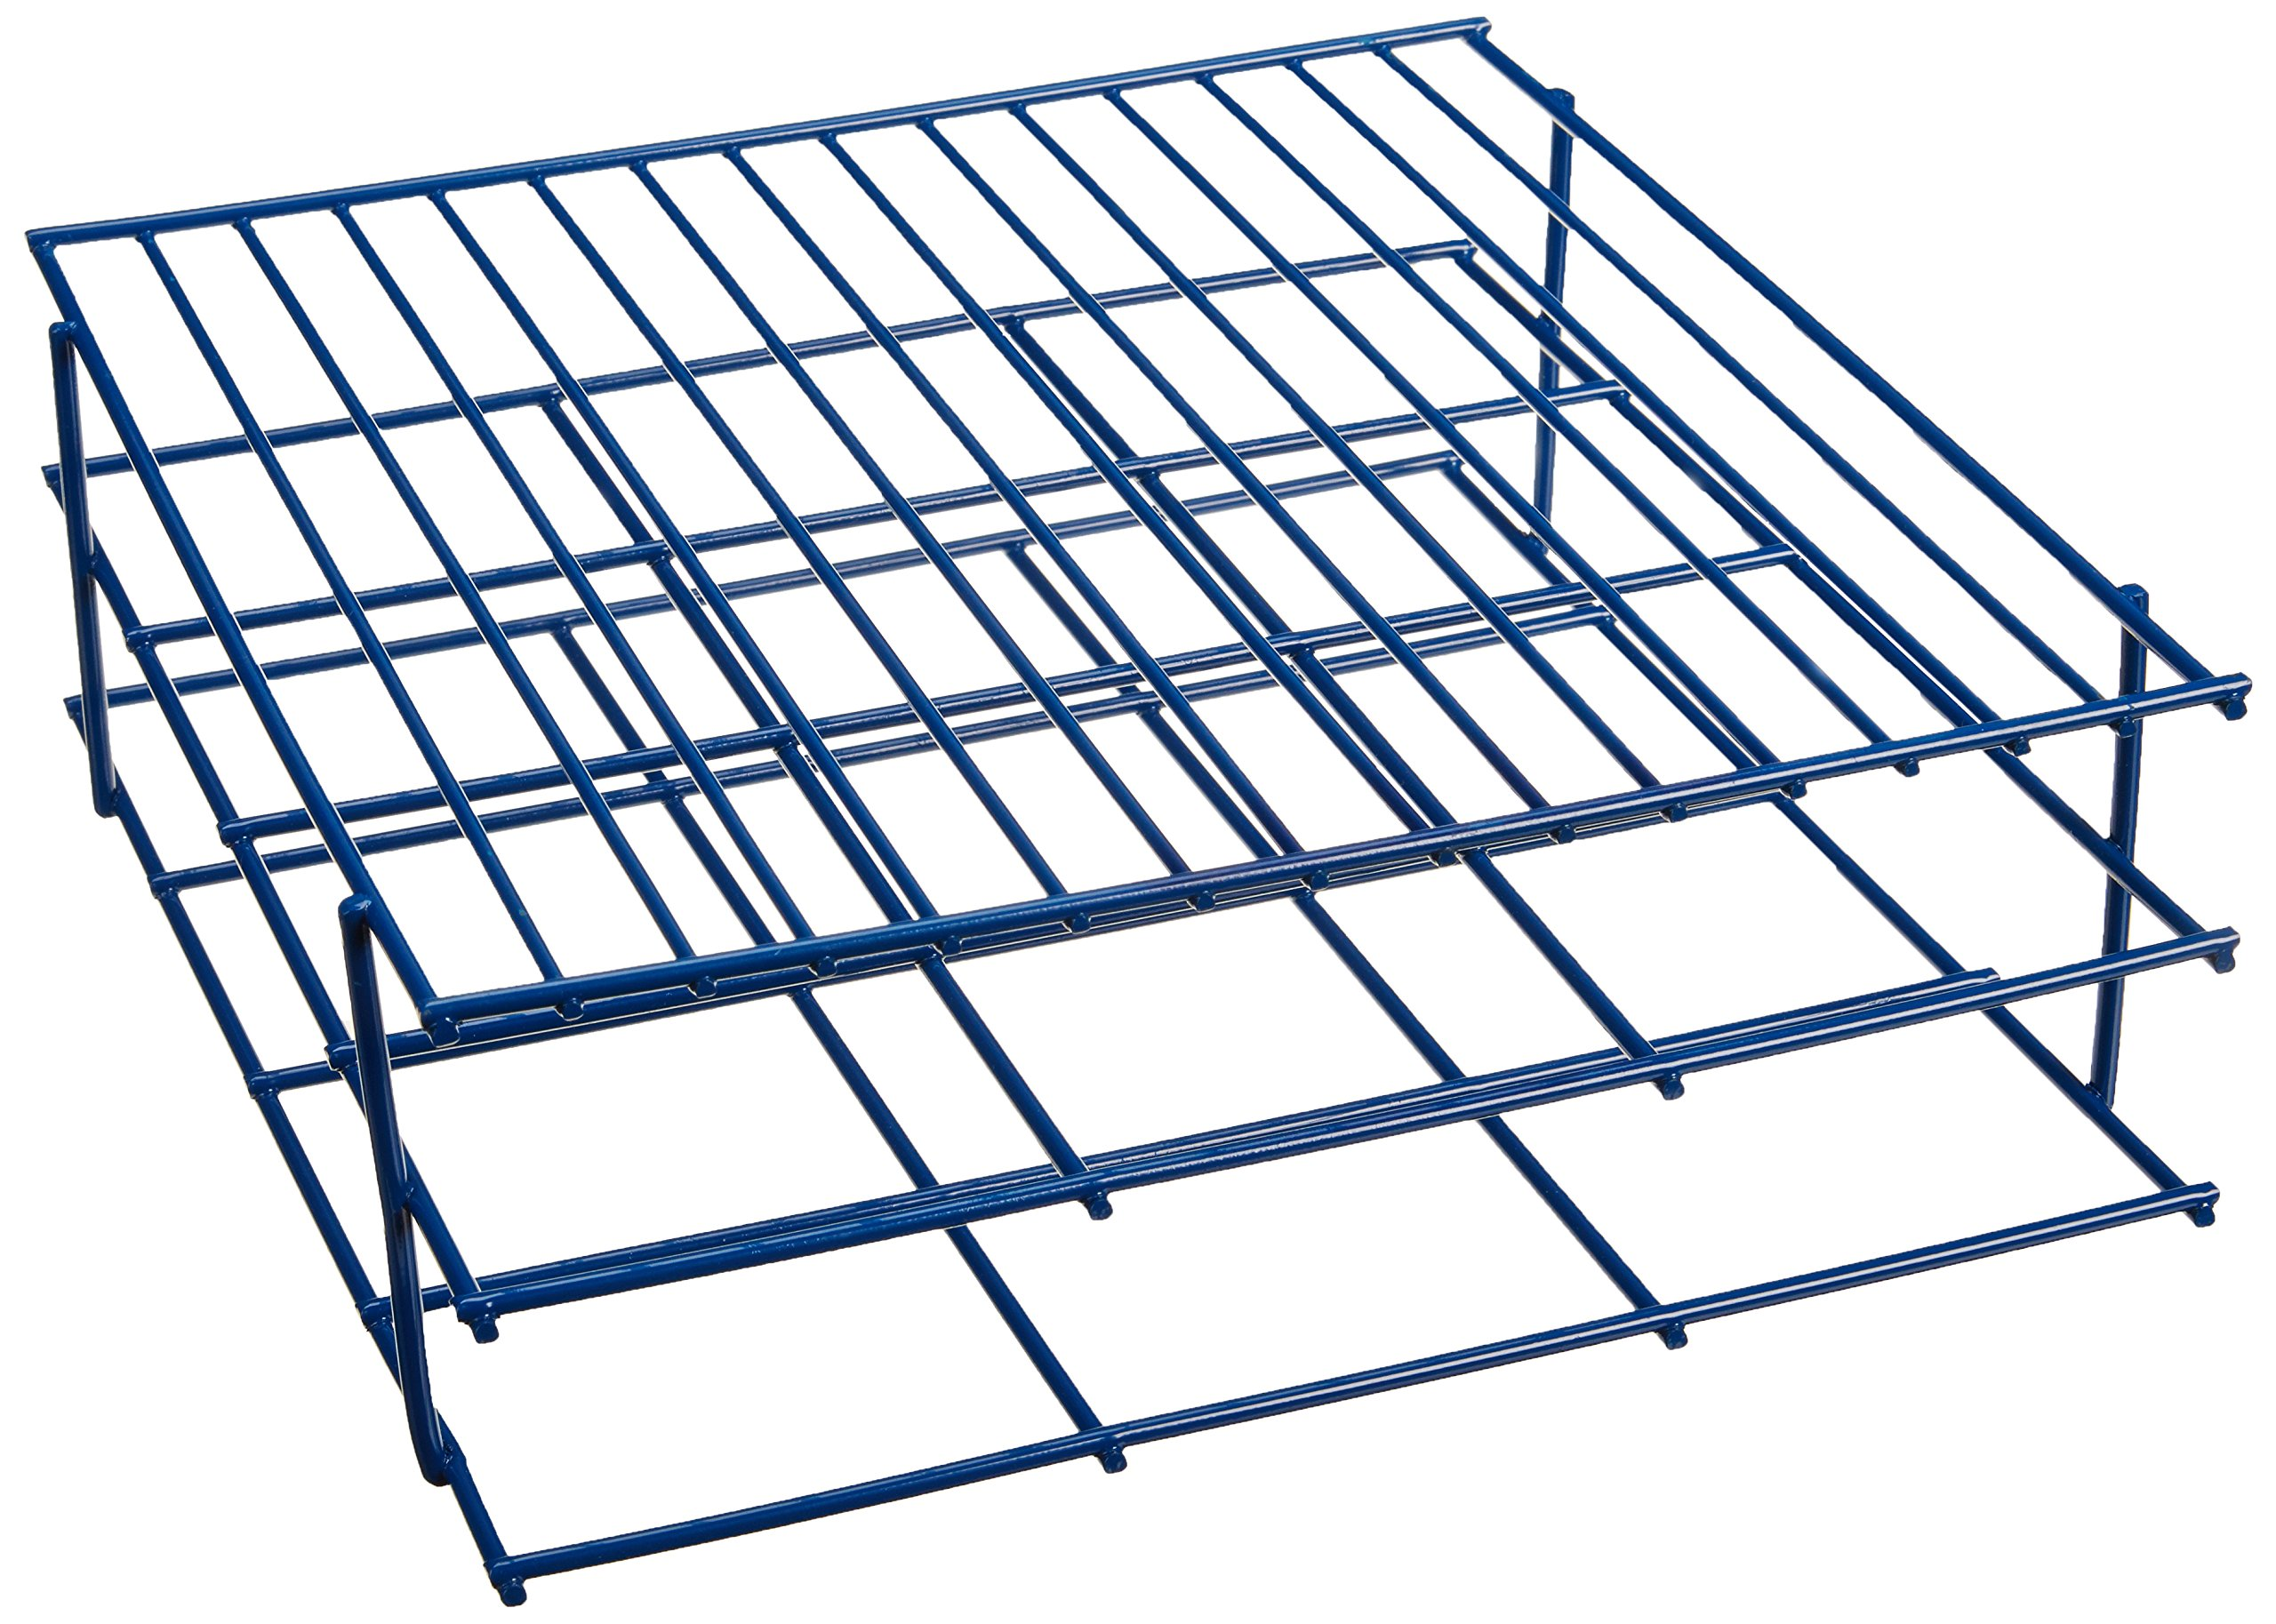 Nasco B00751WA Carrying Rack for Whirl-Pak Bags, 12 Compartment, 3'' L x 2-3/8'' W Compartment Size